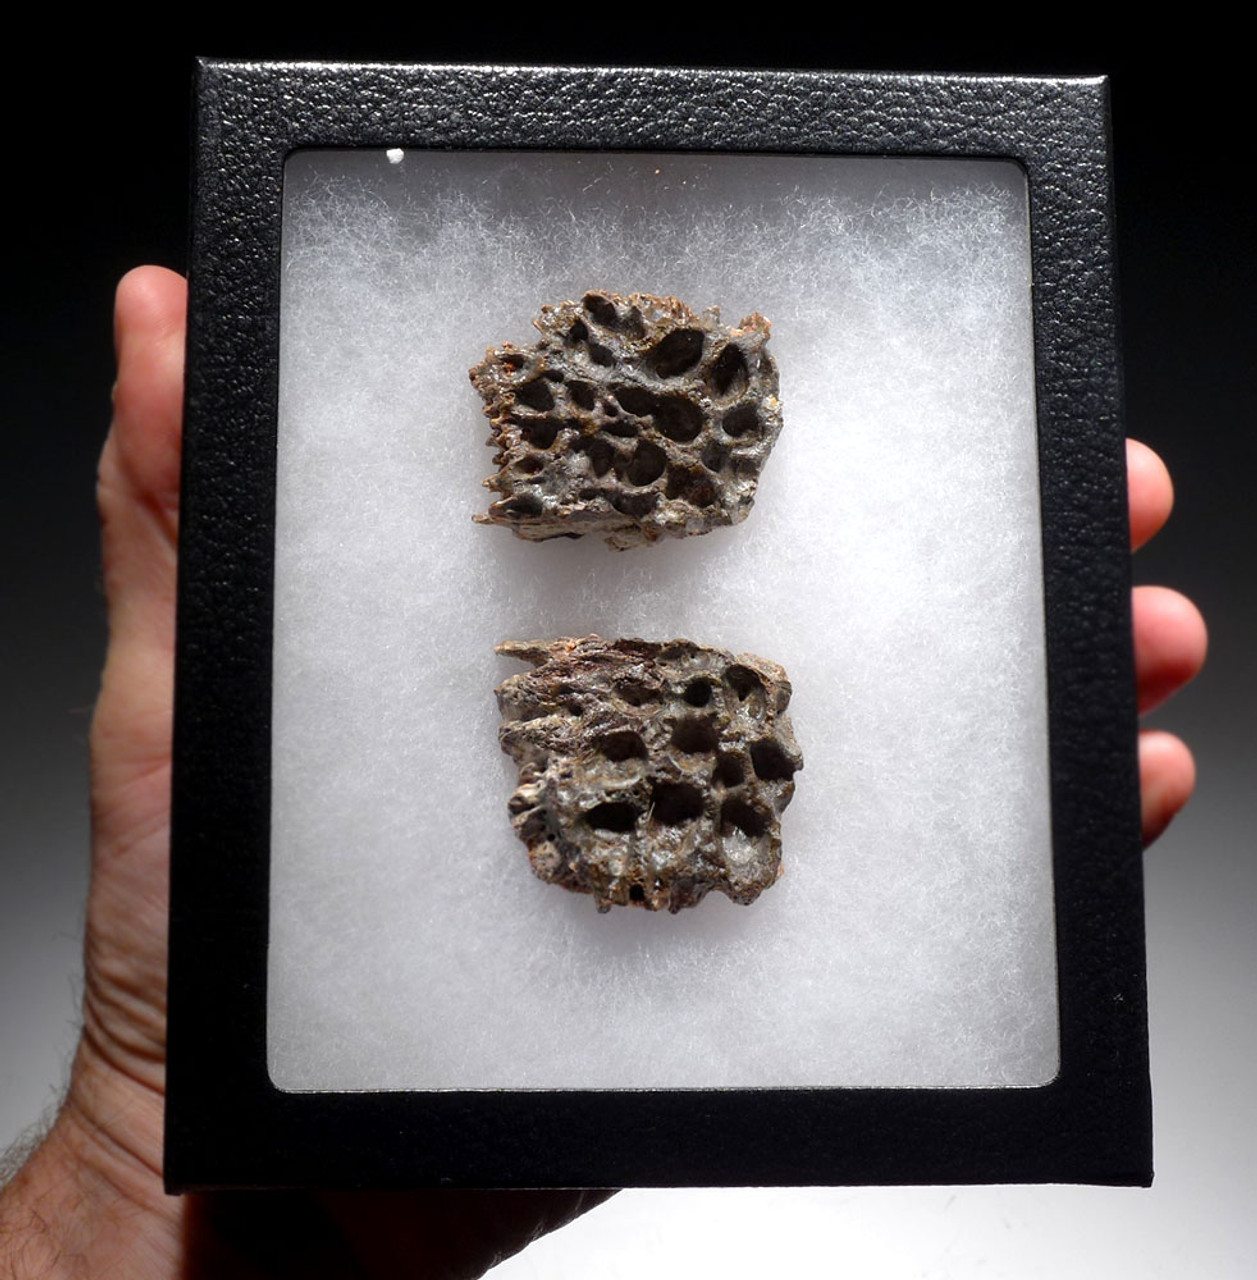 SUPERCROC DERMAL ARMOR SCUTE FOSSILS FROM A LARGE SARCOSUCHUS IMPERATOR CROCODILE OF THE DINOSAUR ERA *CROC074